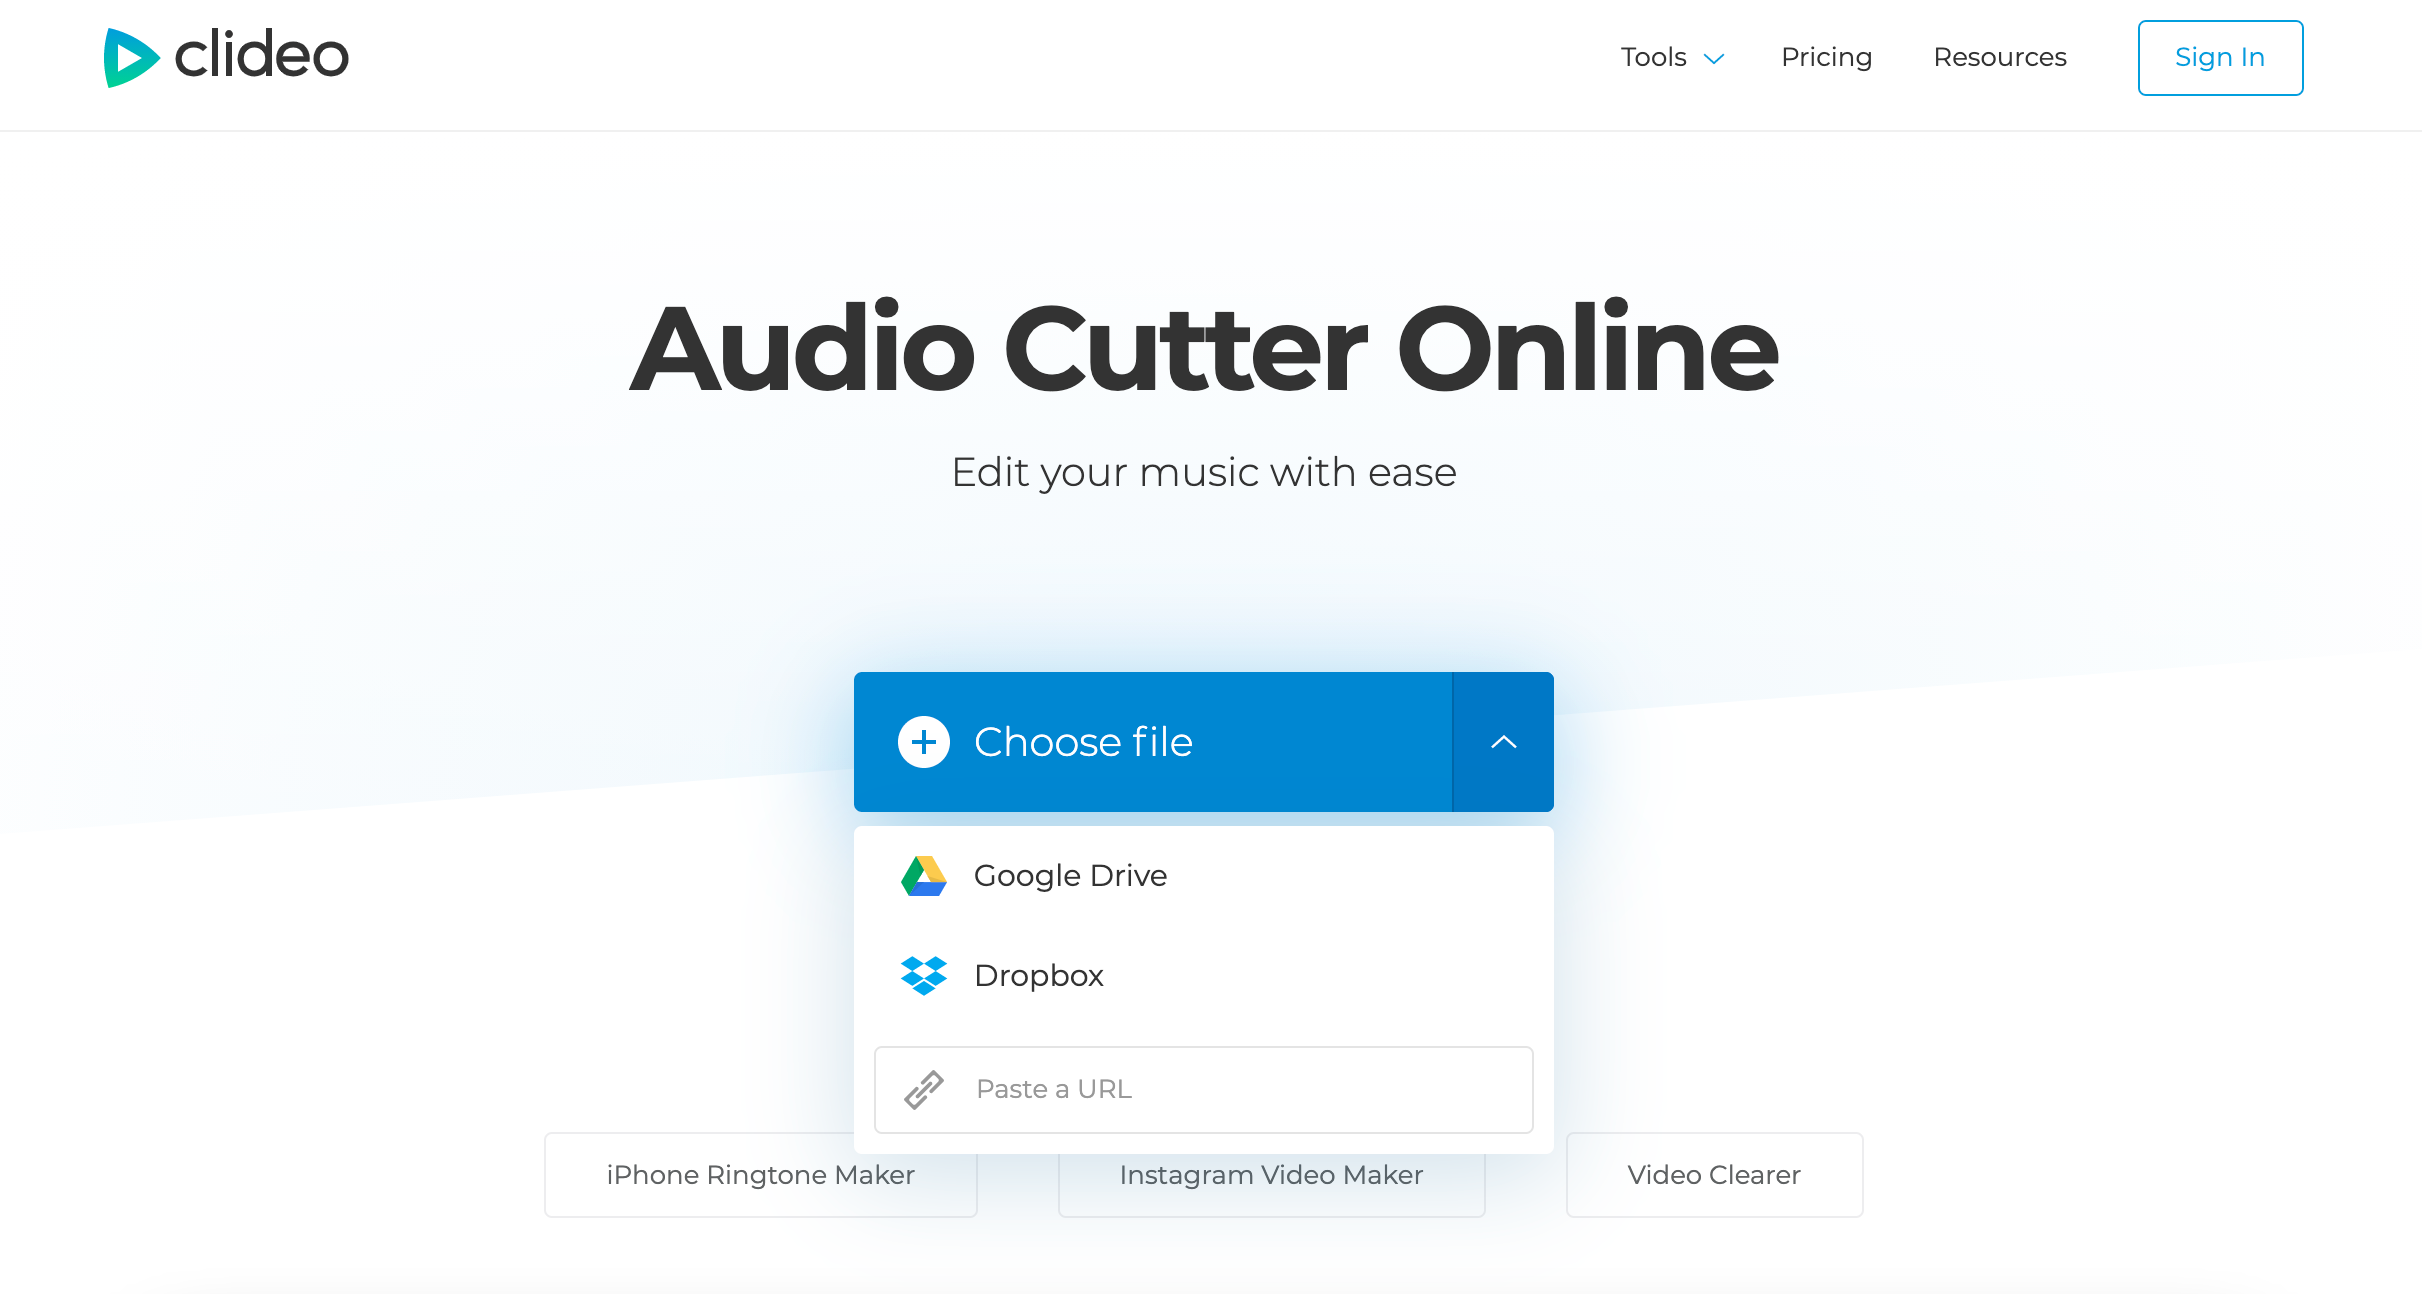 Upload an audio to make a ringtone online